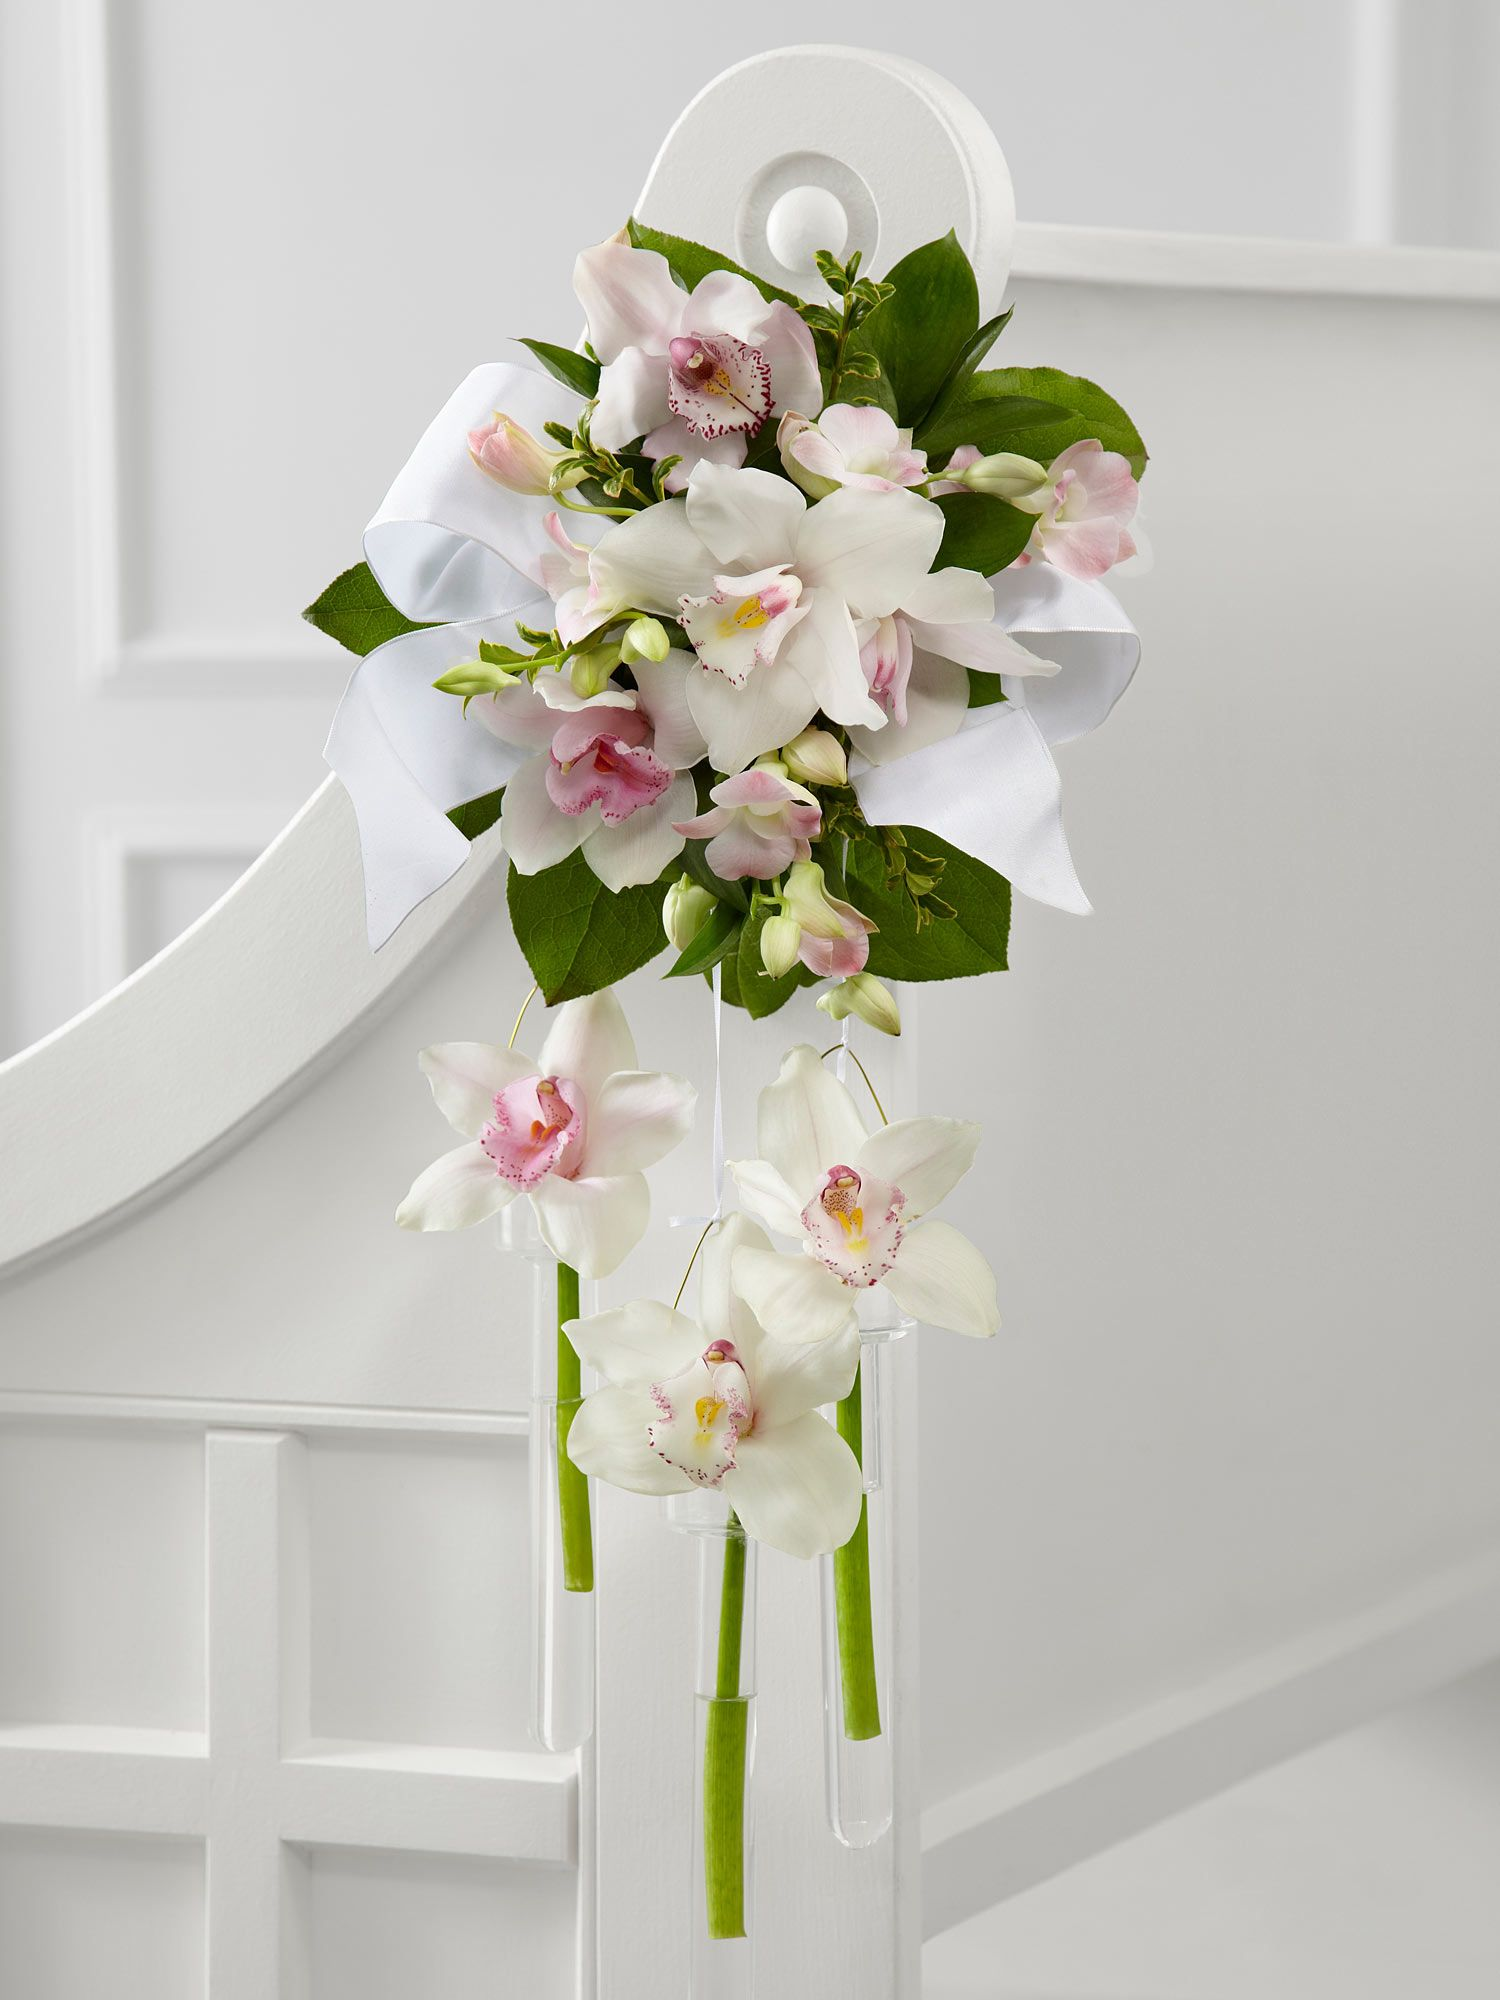 Pink And White Wedding Flowers For Pew Ends Chairpewaisle